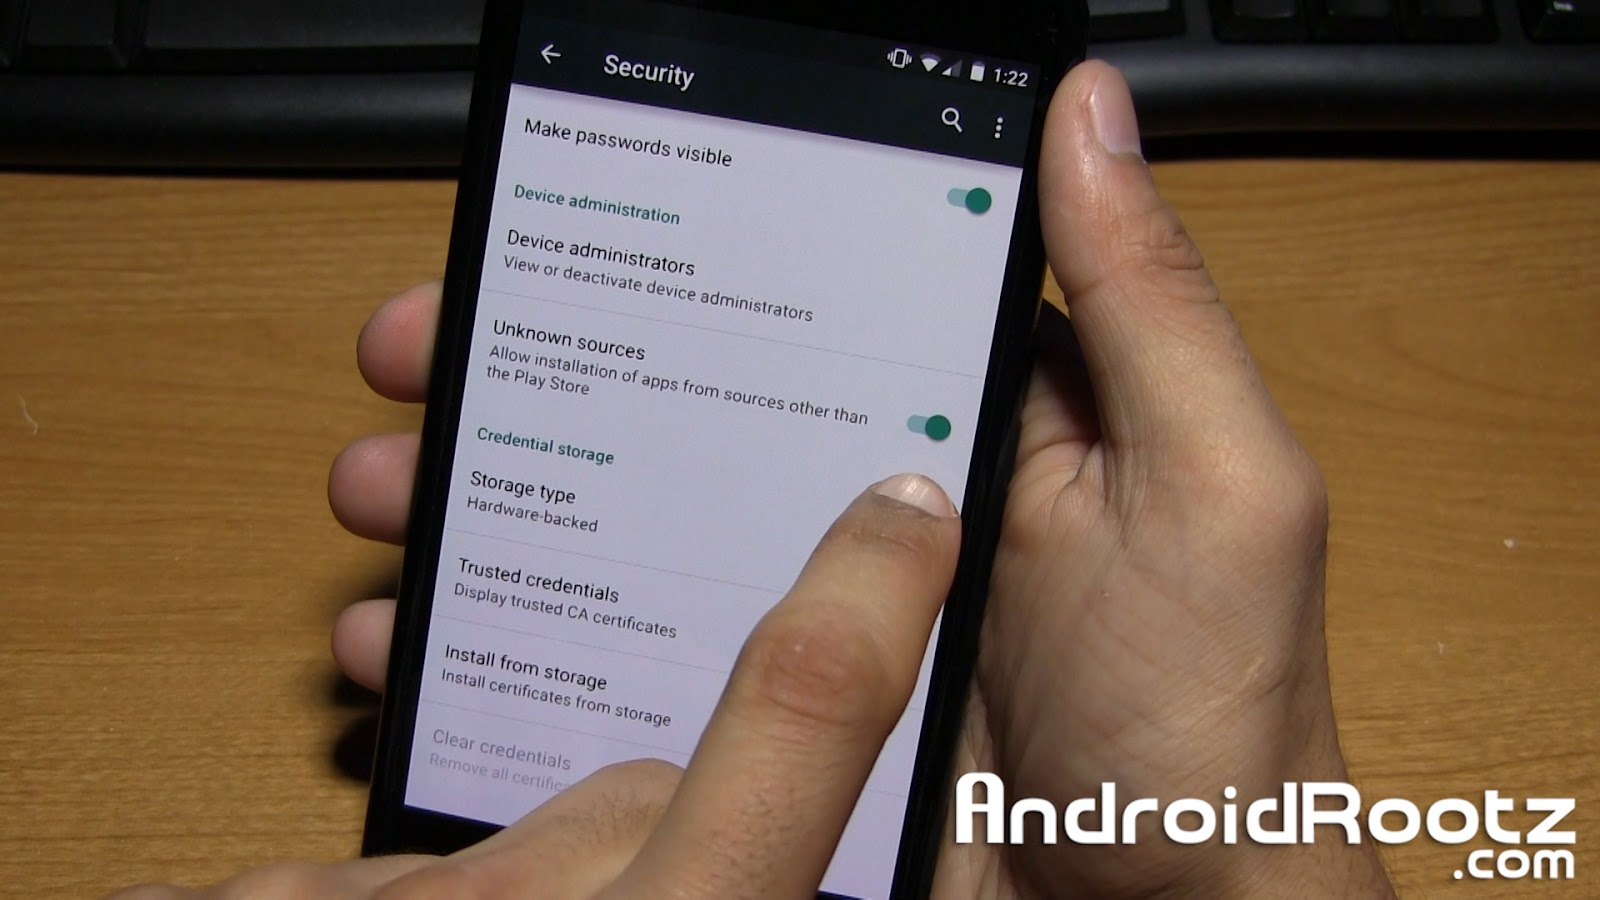 Phone Download Flash Player For Android Phone how to install flash player on android lollipop androidrootz download kitkat adobe 11 1 apk your phone using the link below i am aware that file is meant for kitka